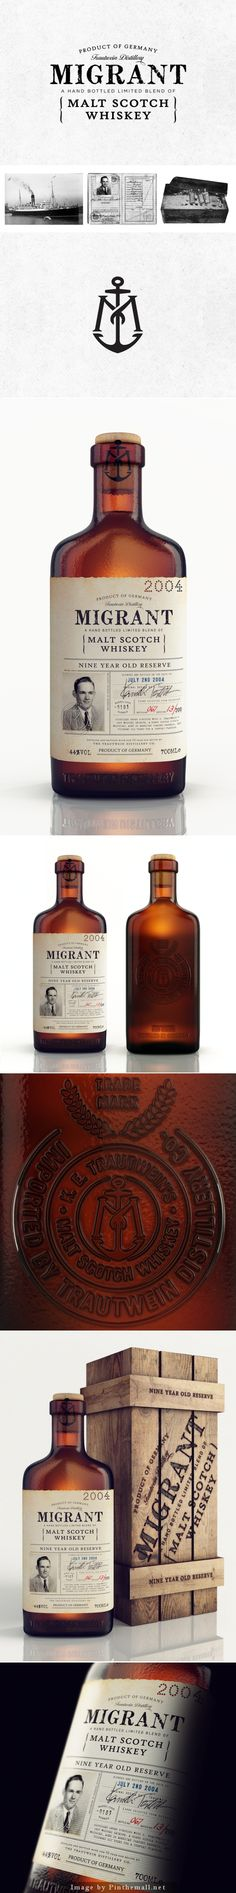 Migrant #Whiskey, Creative Agency: Chad Michael Studio - http://www.packagingoftheworld.com/2014/10/migrant-whiskey.html